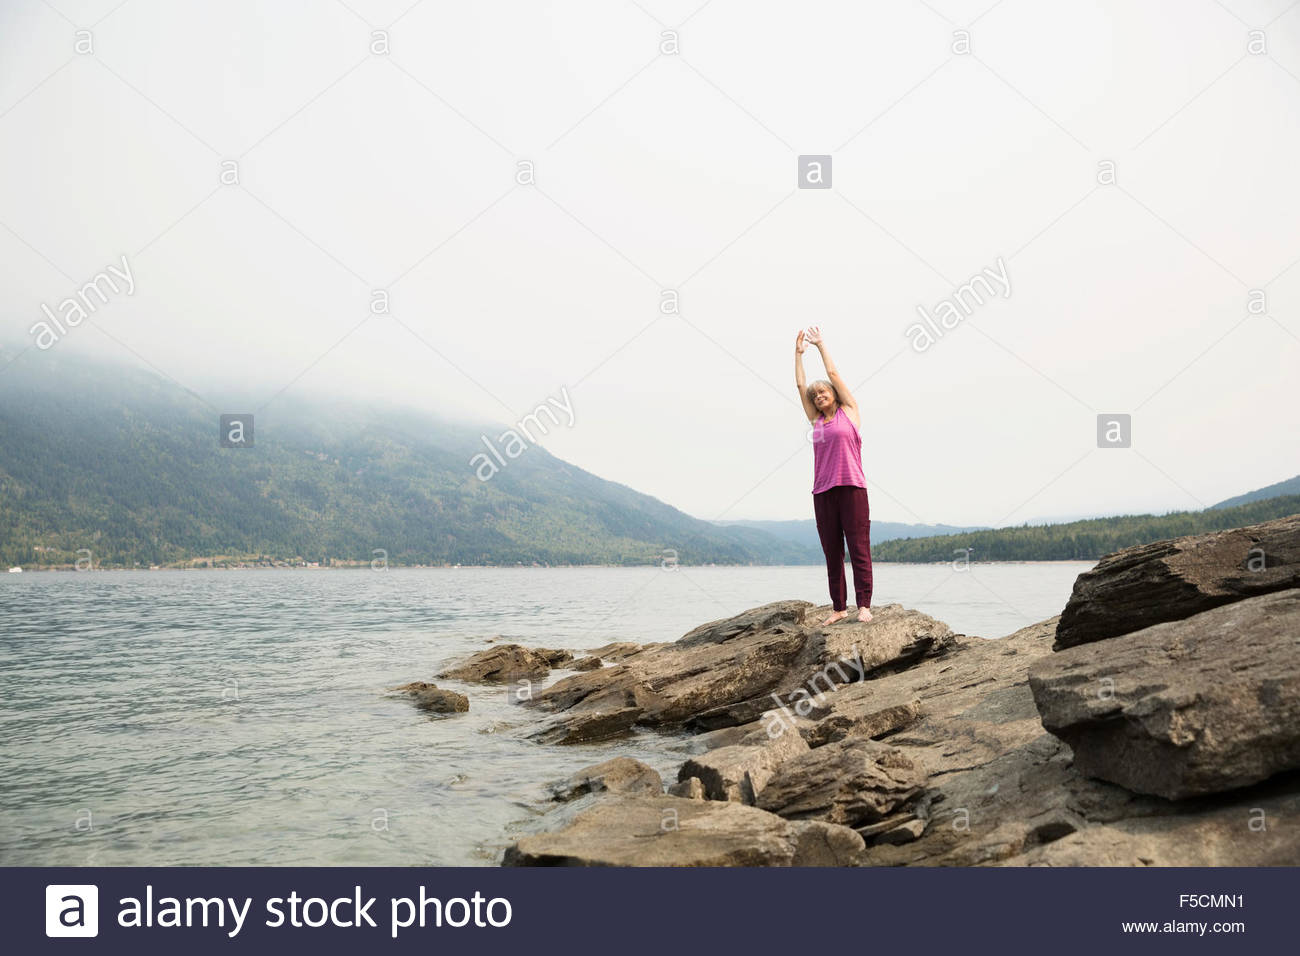 Mature Woman practicing yoga on rock at lakeside Photo Stock